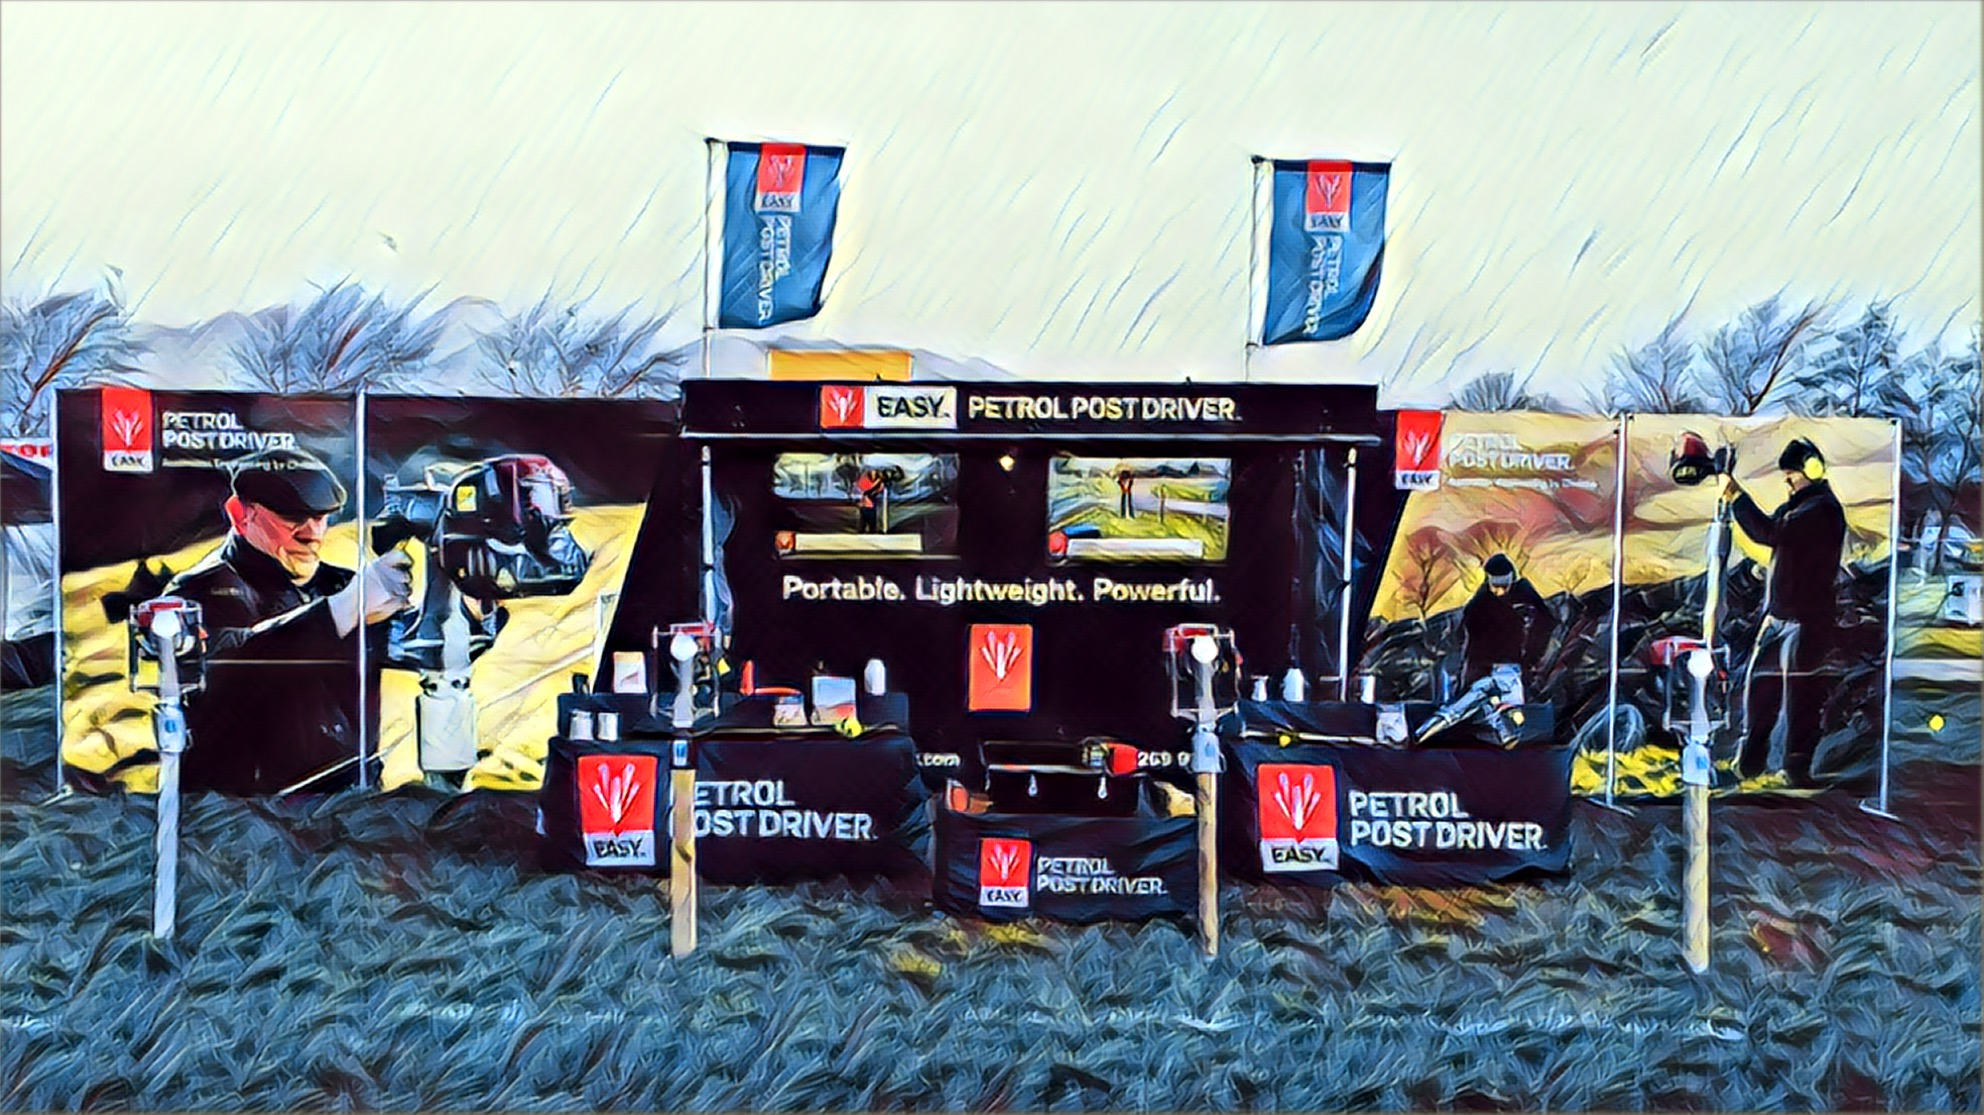 Contract exhibition services outdoor event stands